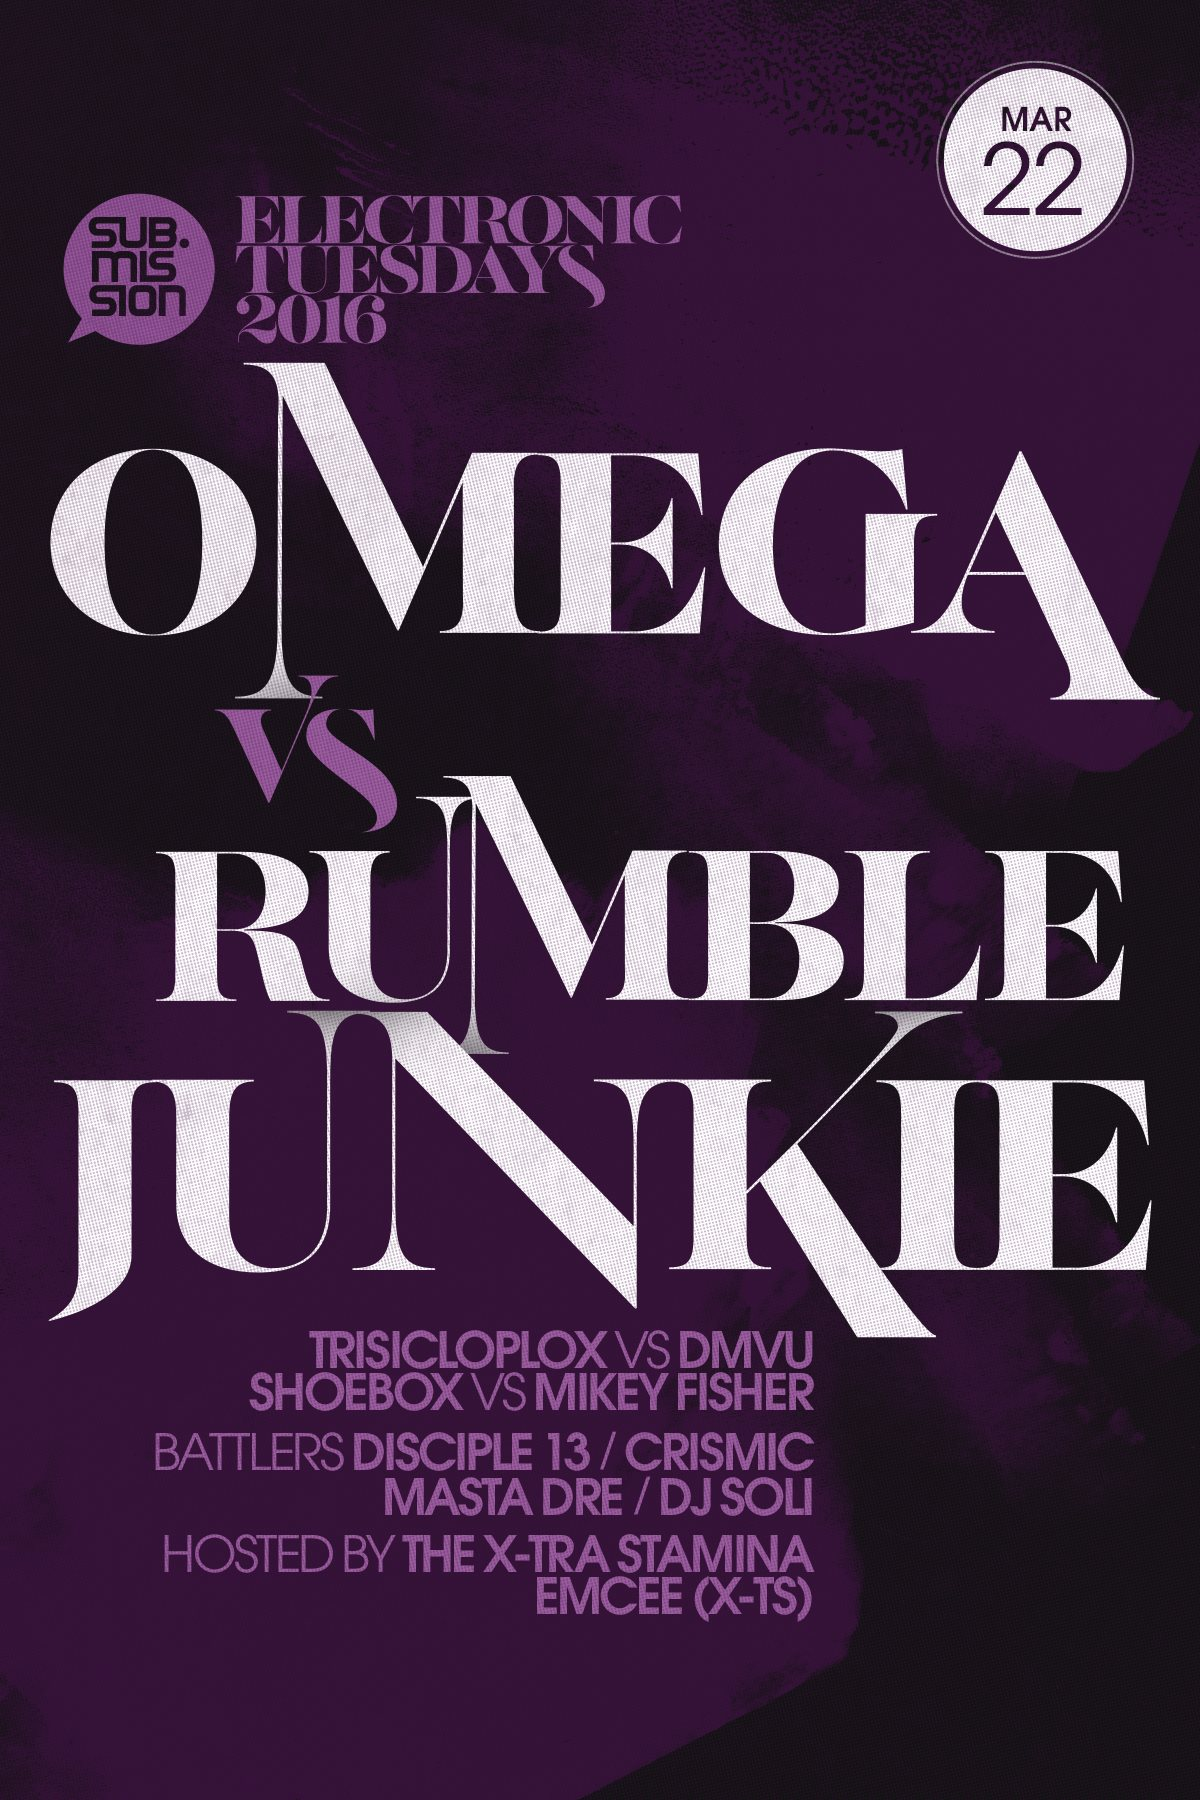 Omega, Mikey Fisher, DMVU In B2b Sets At Electronic Tuesdays March 22nd